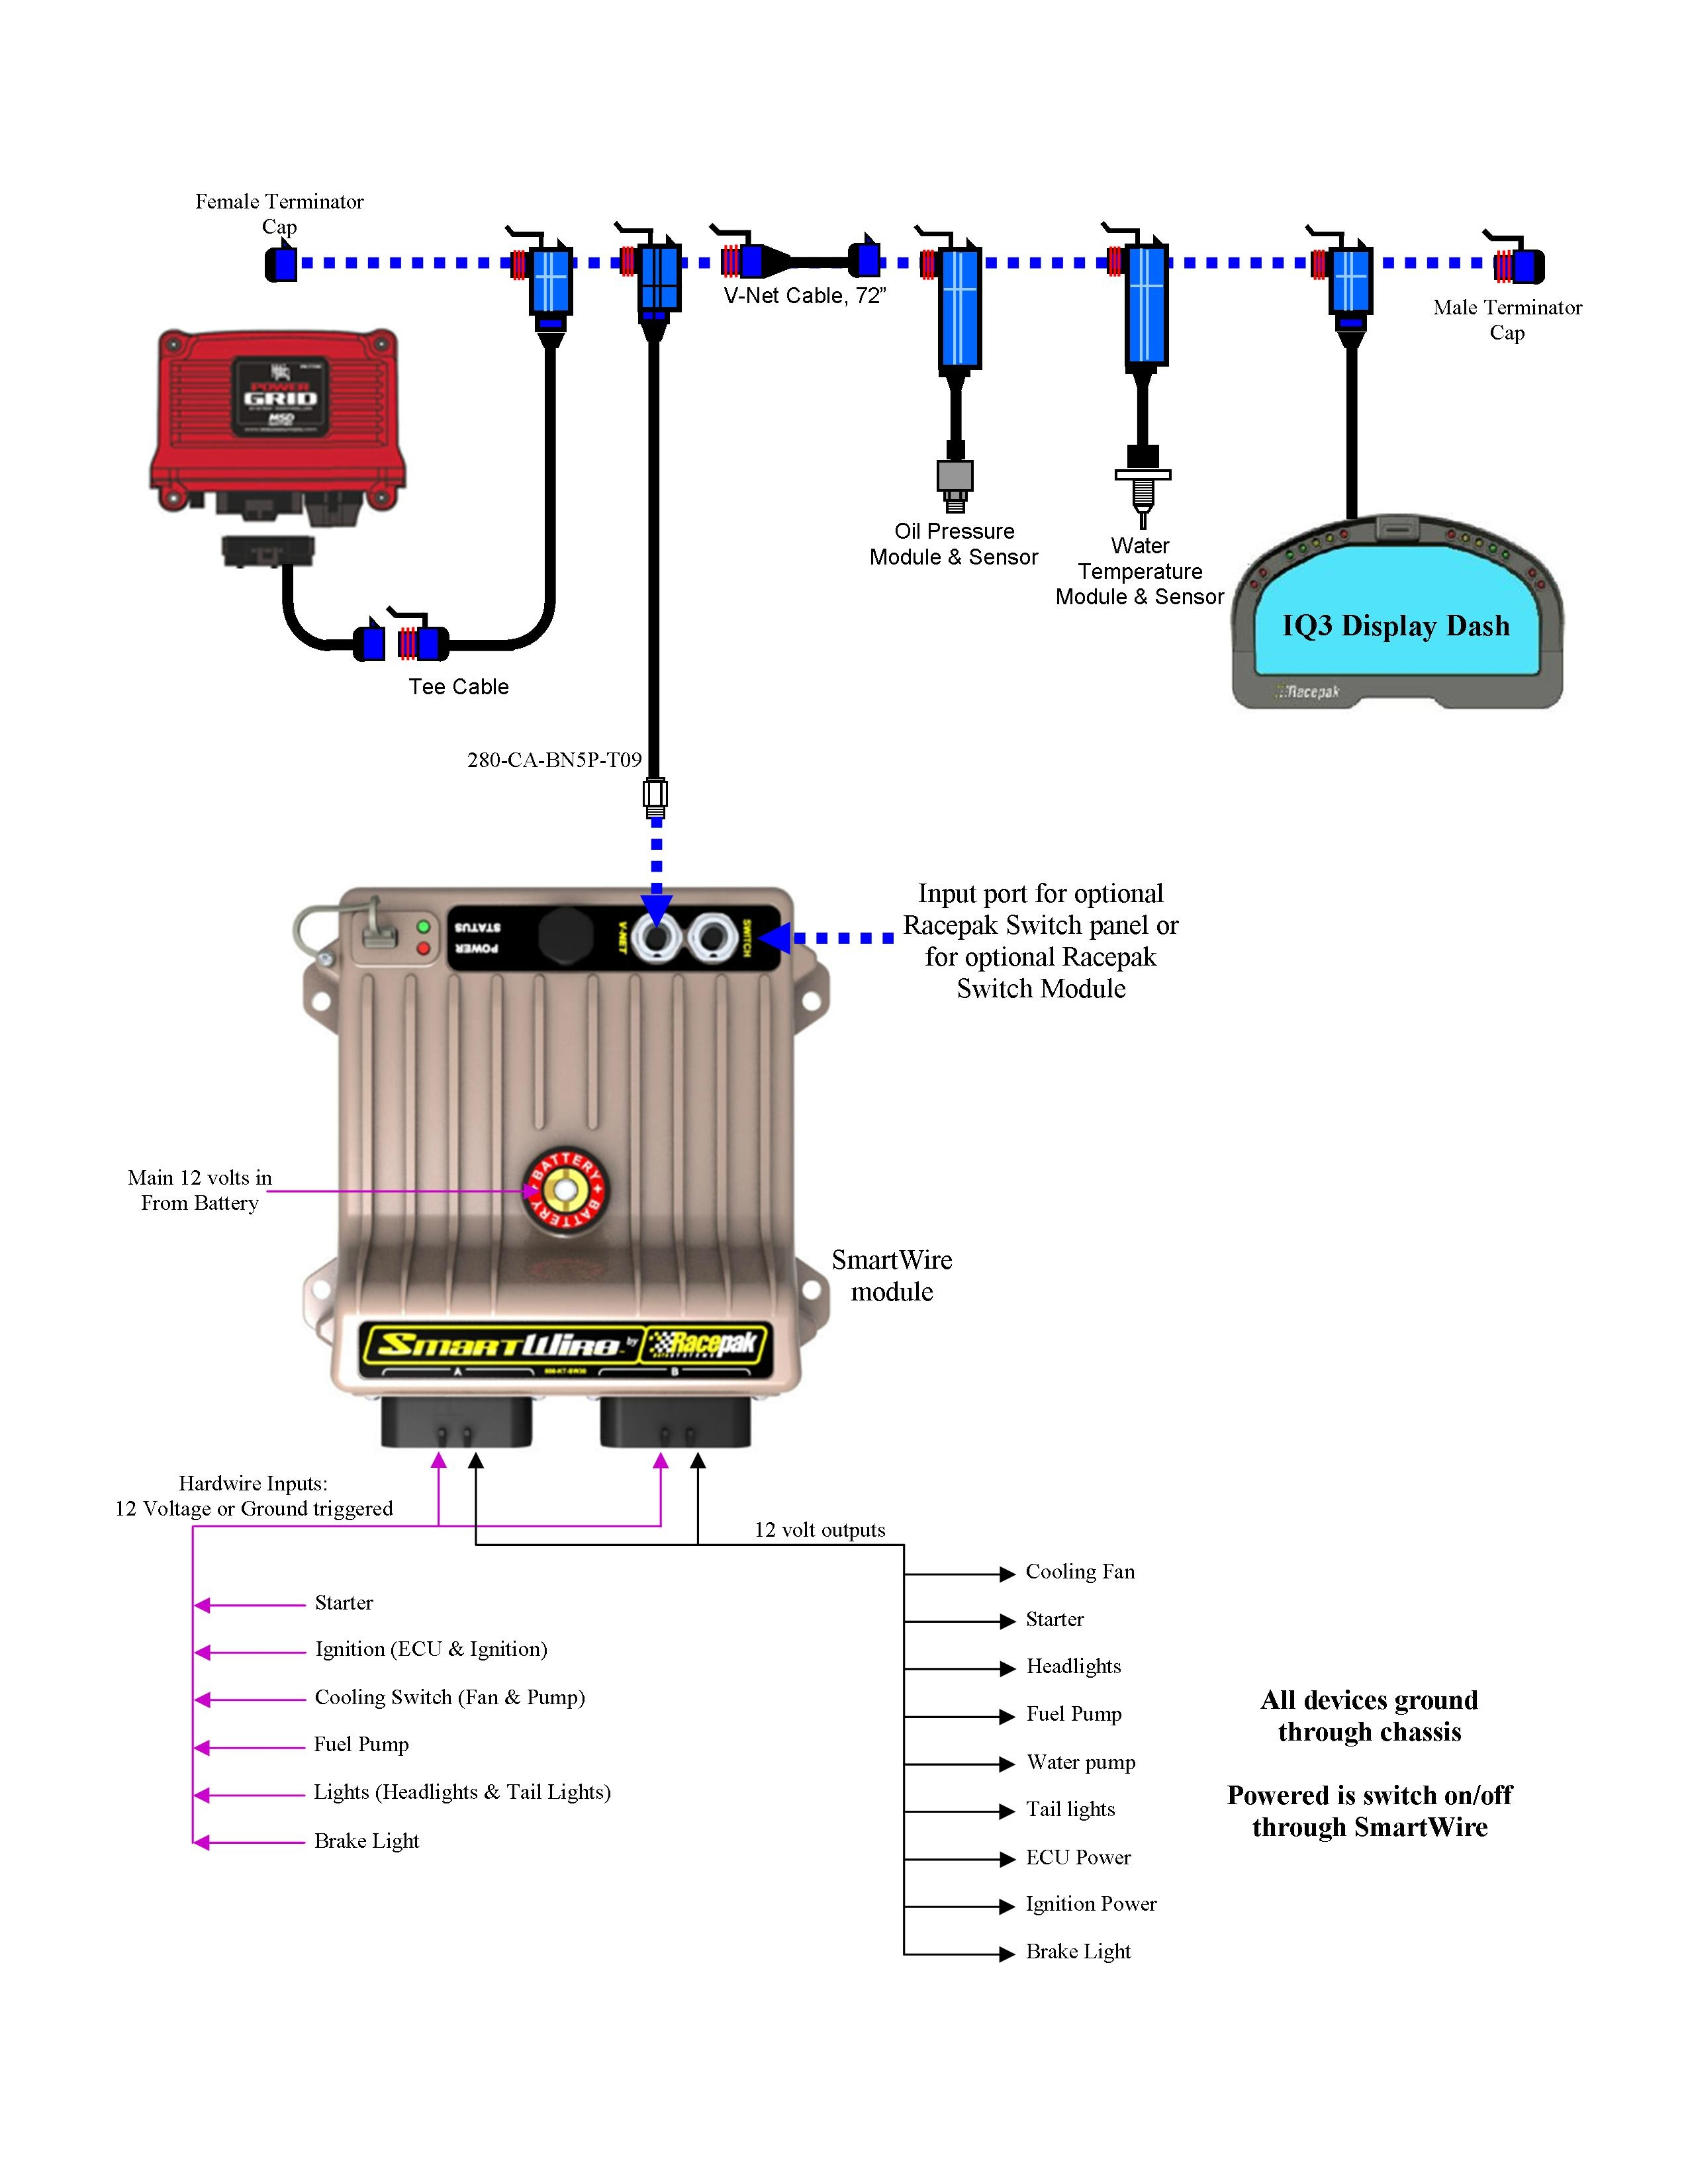 haltech iq3 wiring diagram car aircon electrical racepak 22 images